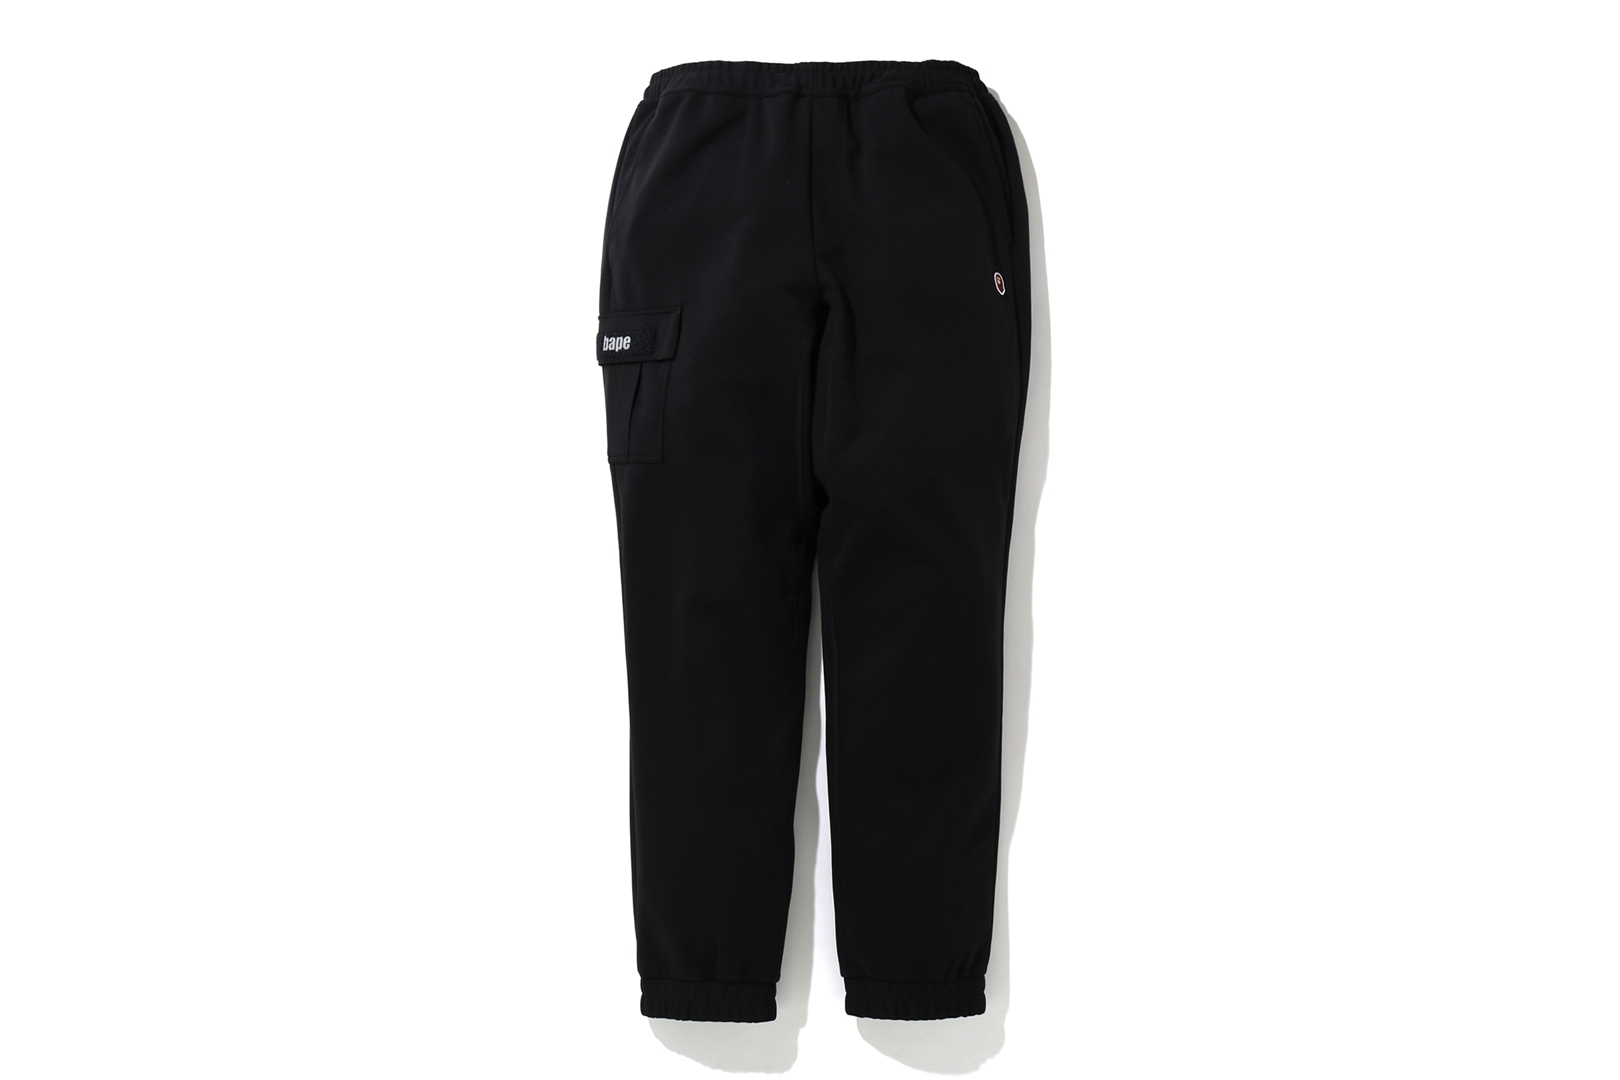 DOUBLE KNIT SIDE POCKET PANTS_a0174495_12470386.jpg